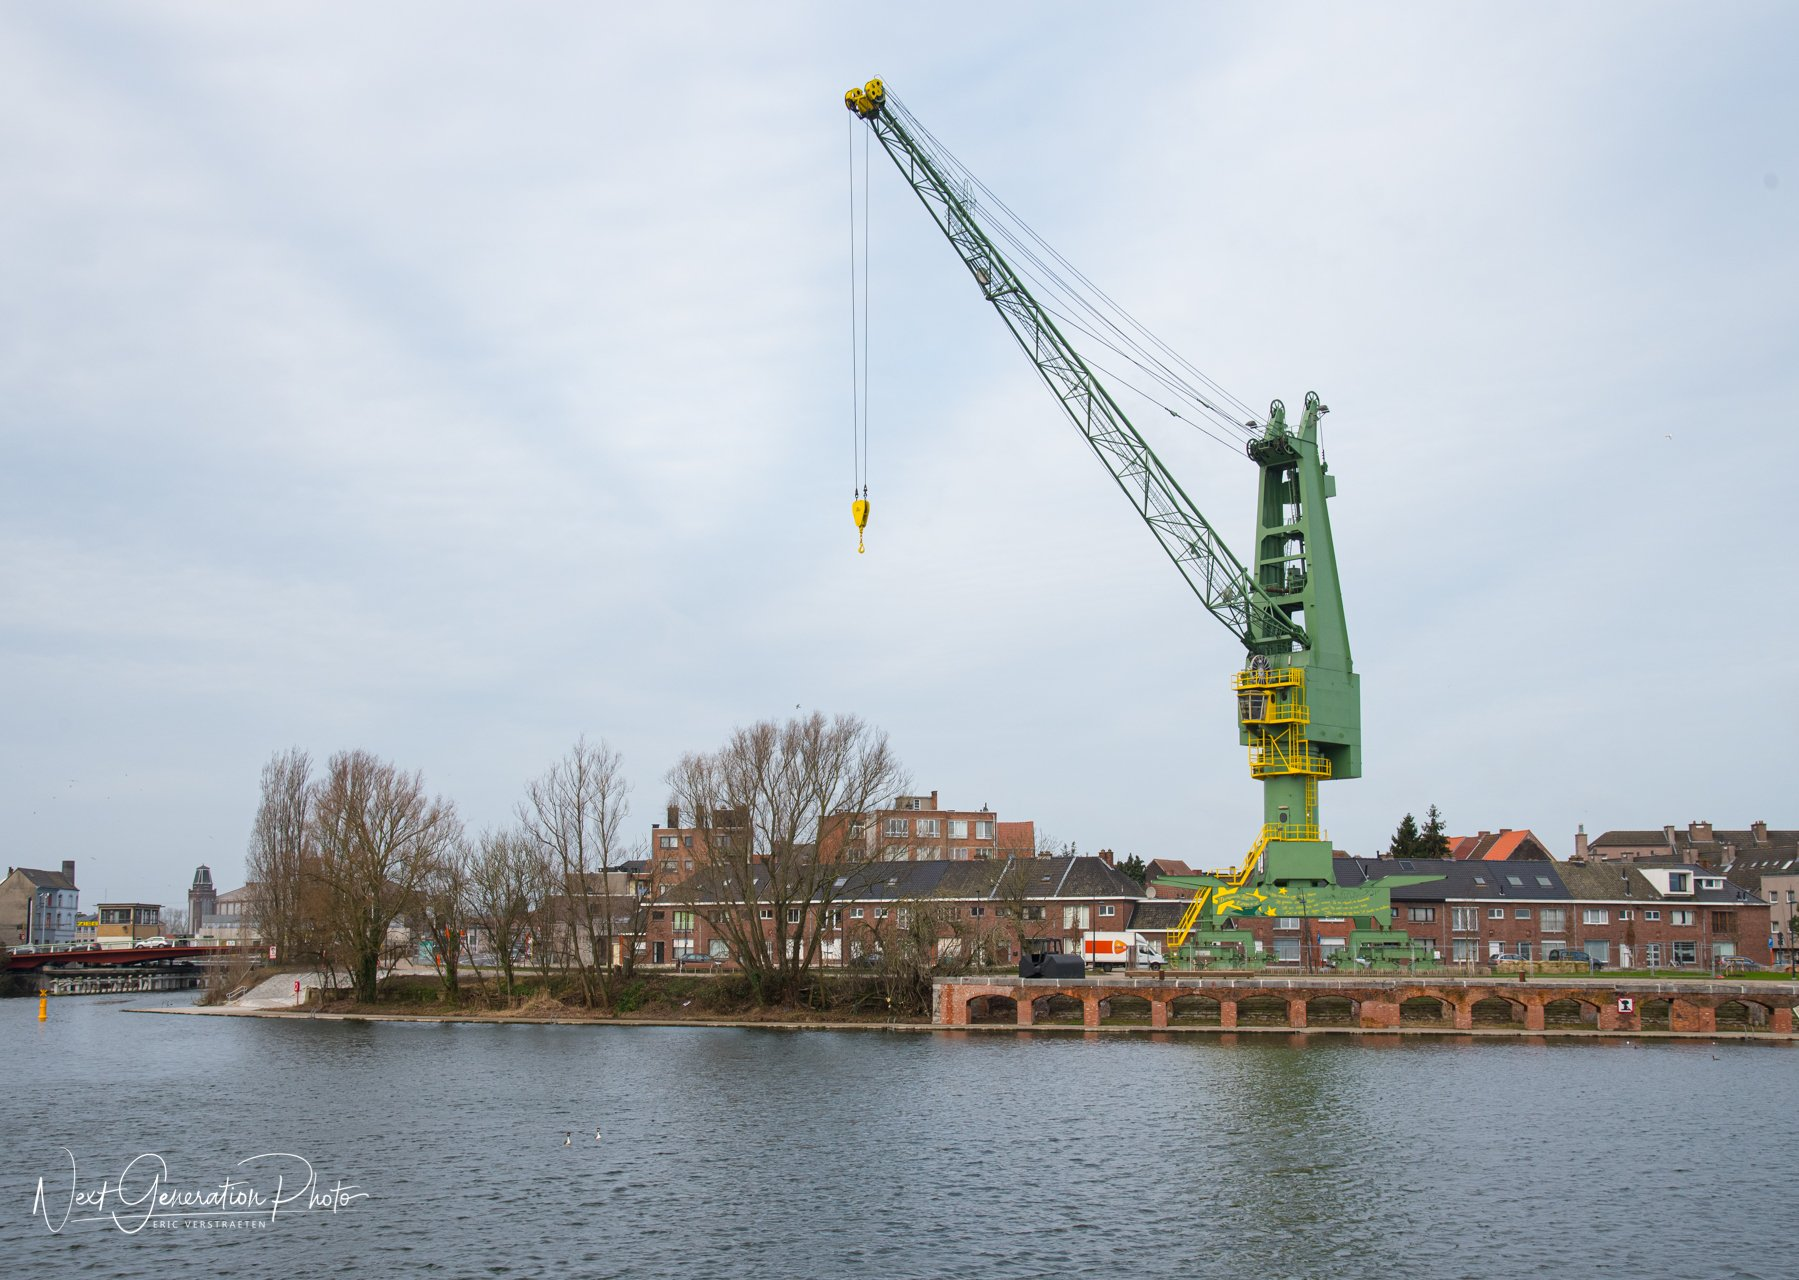 Houtdok in de Gentse haven 2020-02-03-6